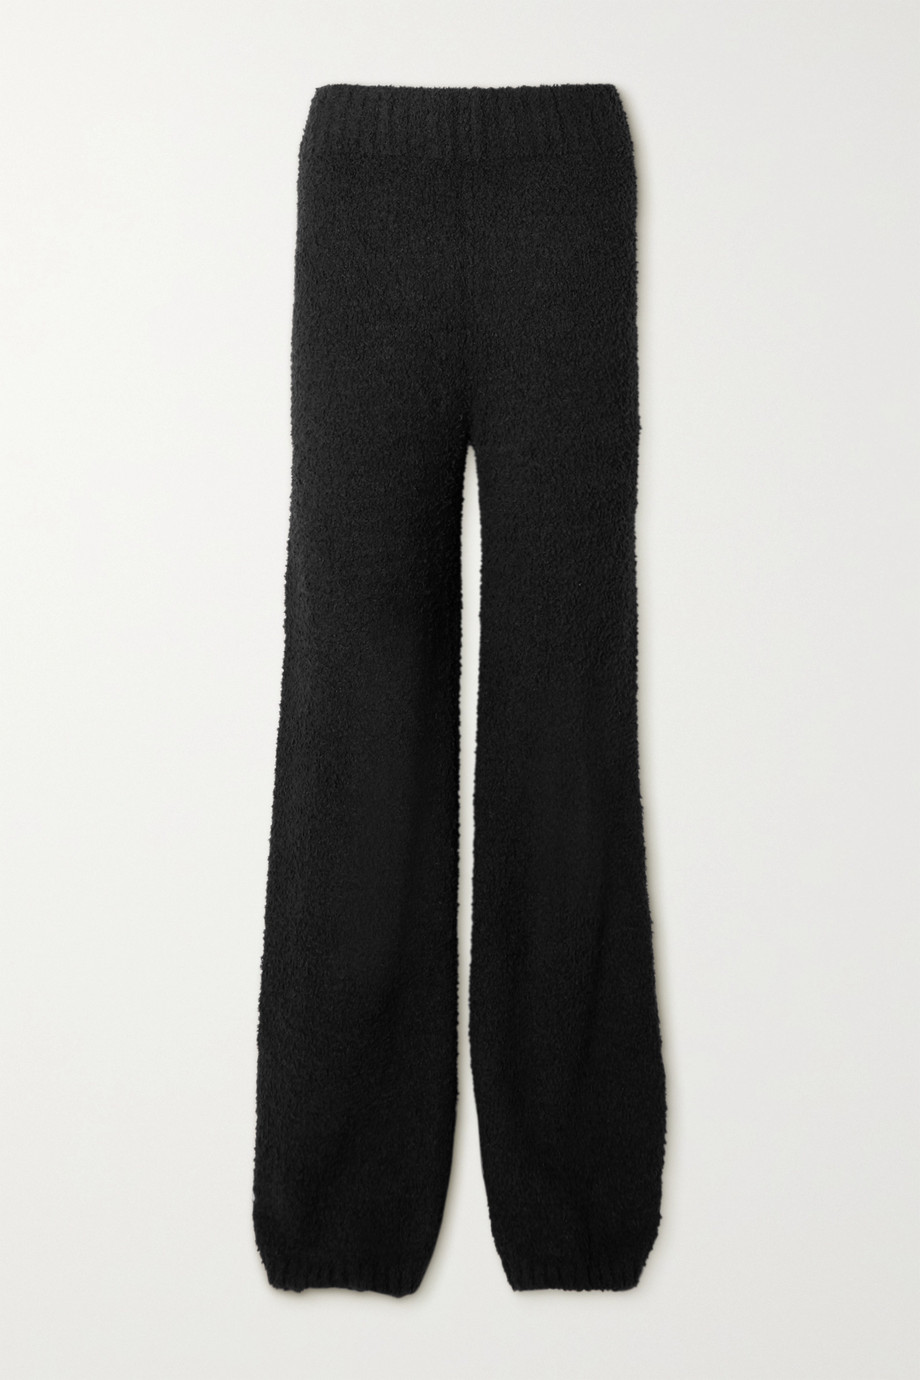 SKIMS Cozy Knit bouclé pants